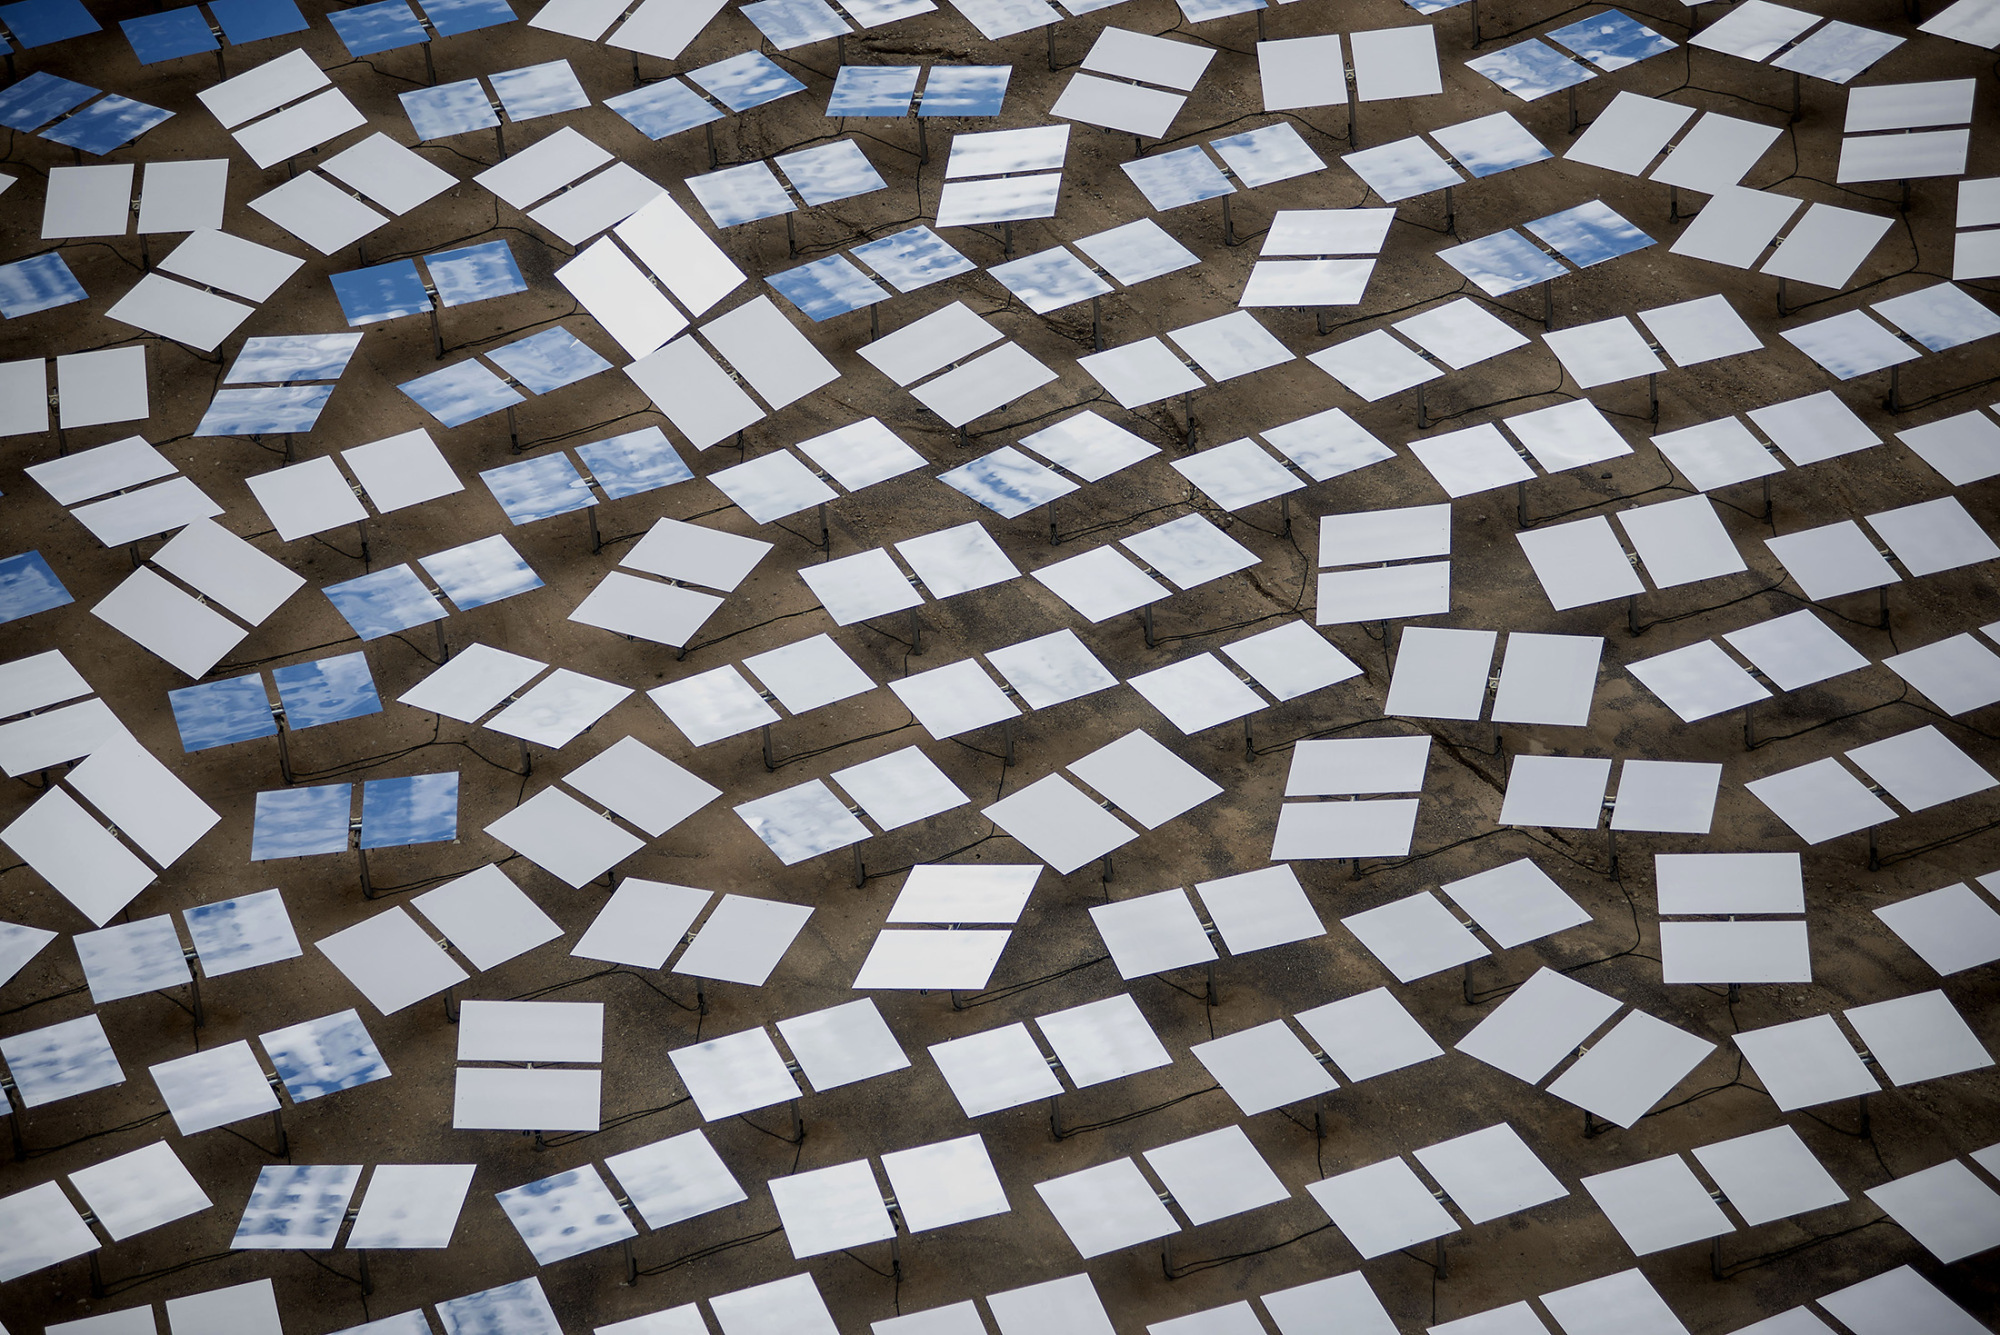 Solar news. Photographer: Jacob Kepler/Bloomberg